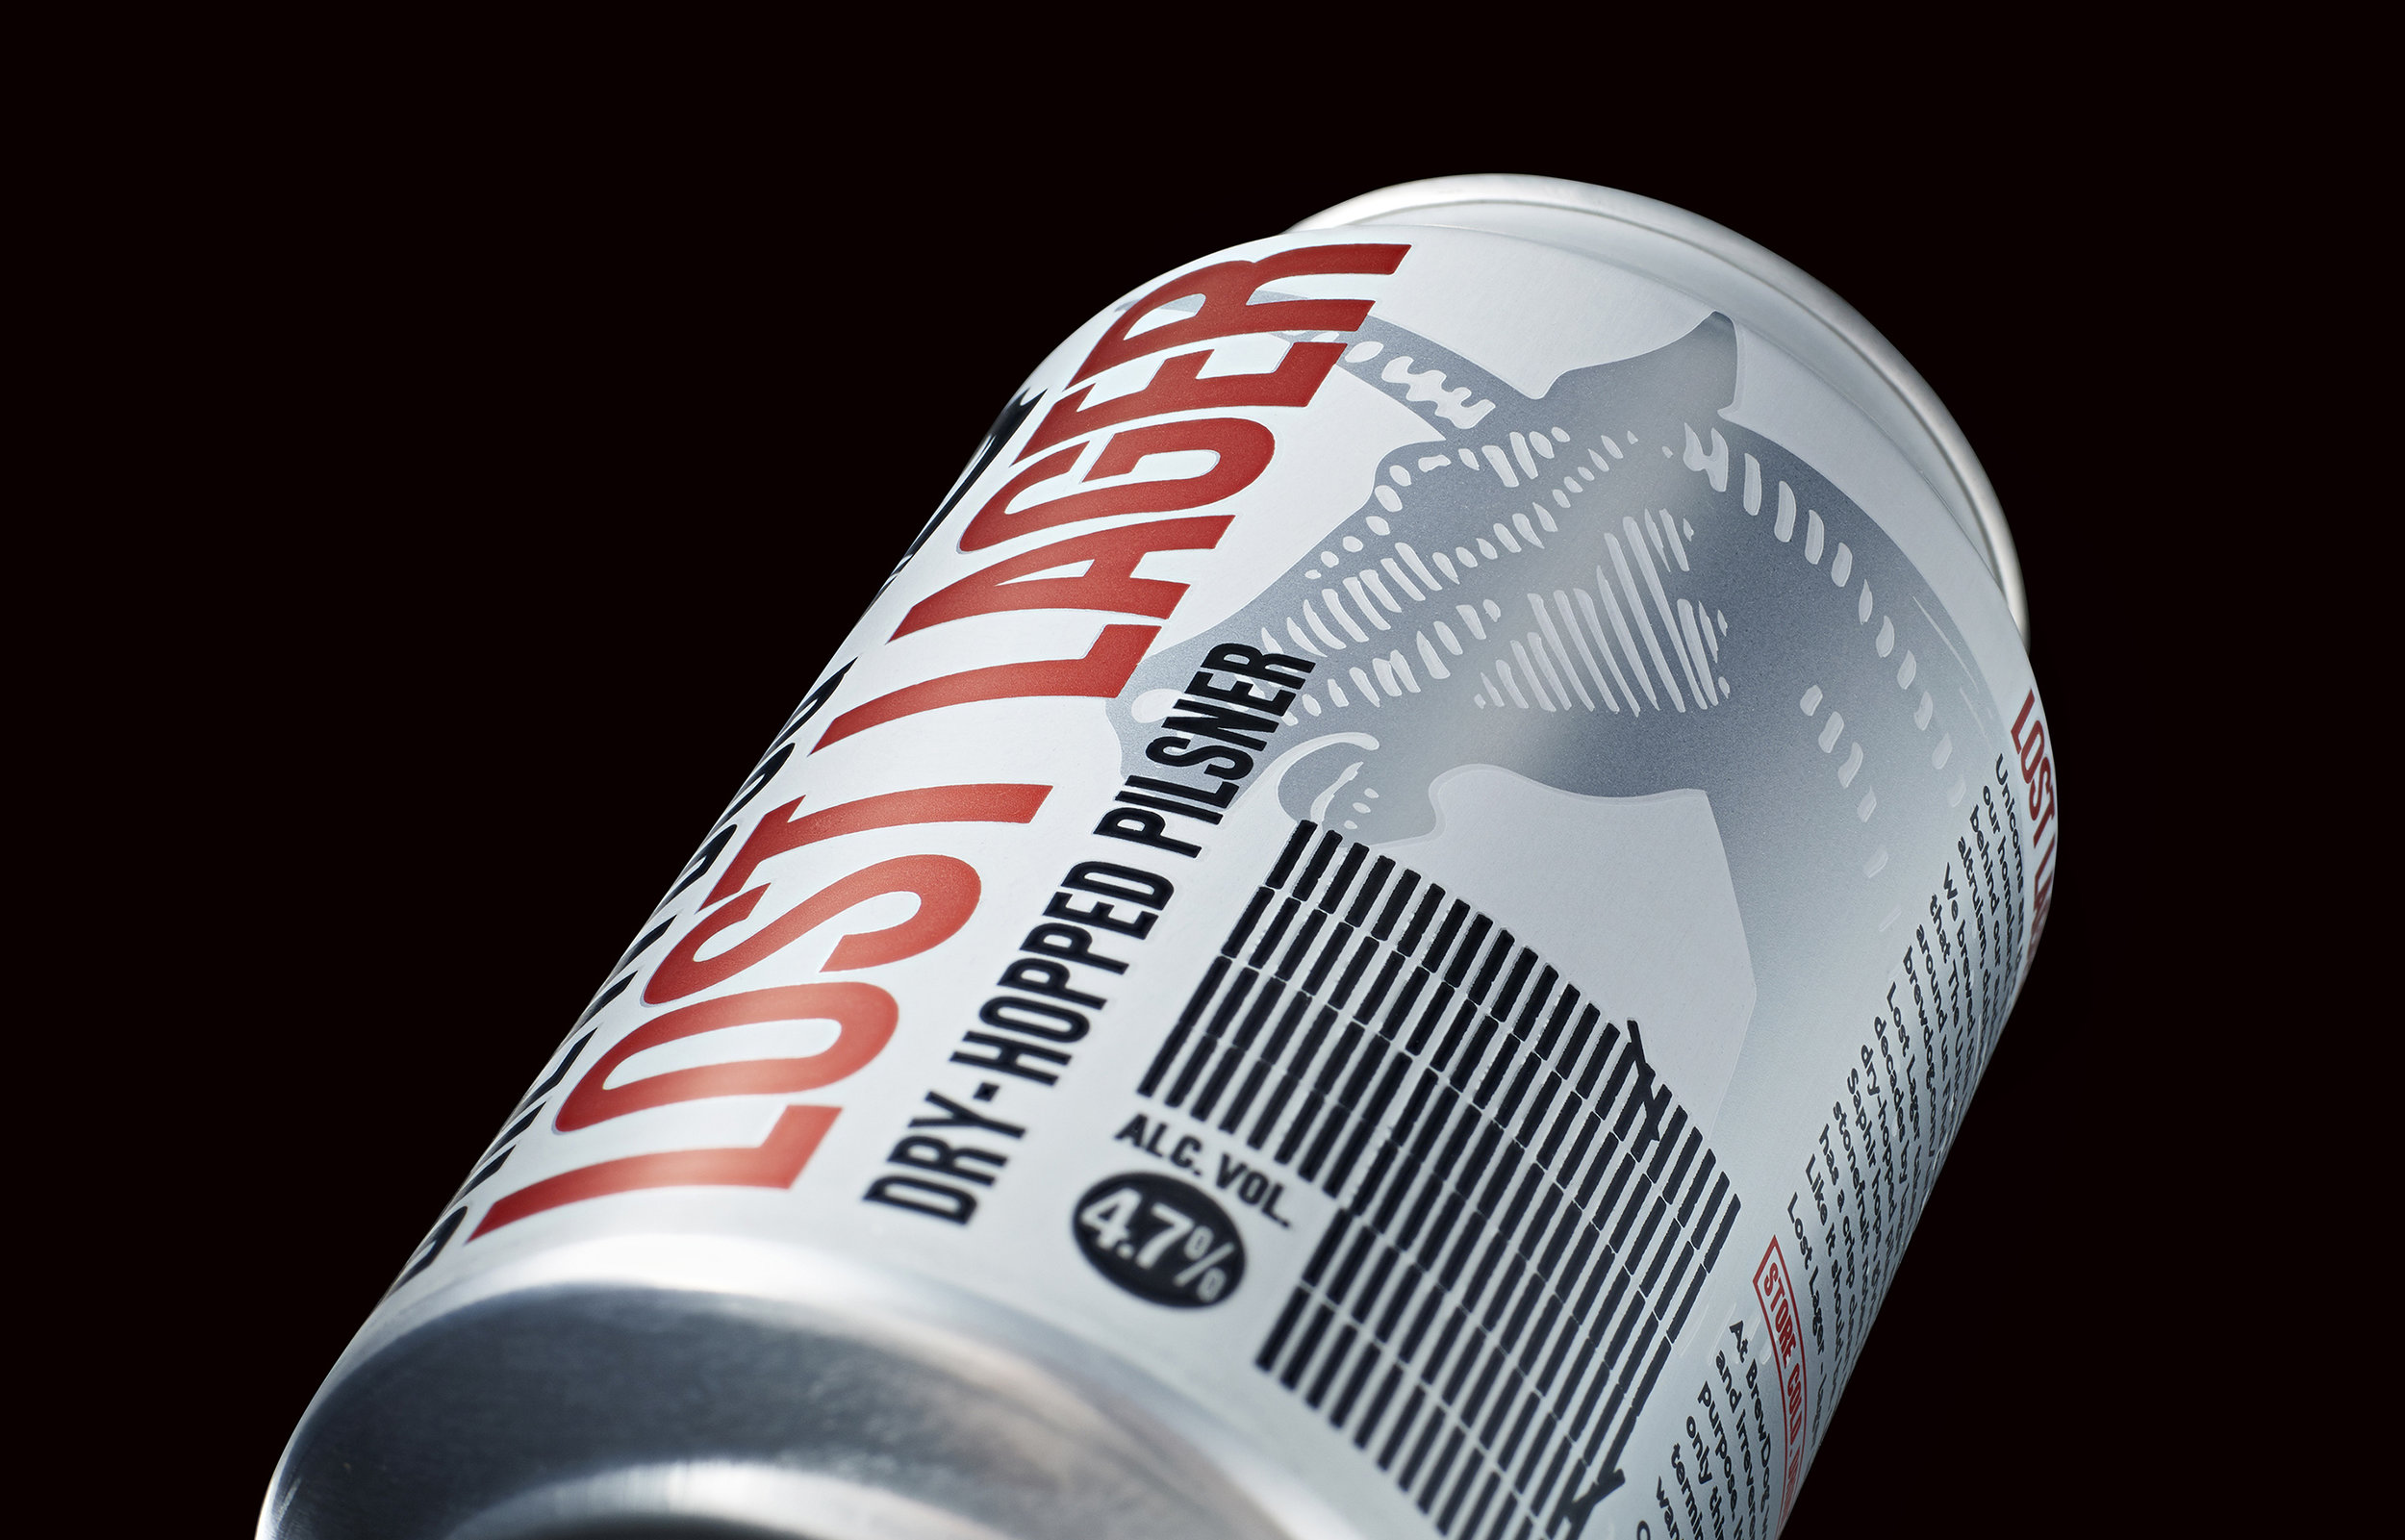 Naming and Packaging Design of BrewDog Newly Launched Lost Lager / World Brand & Packaging Design Society